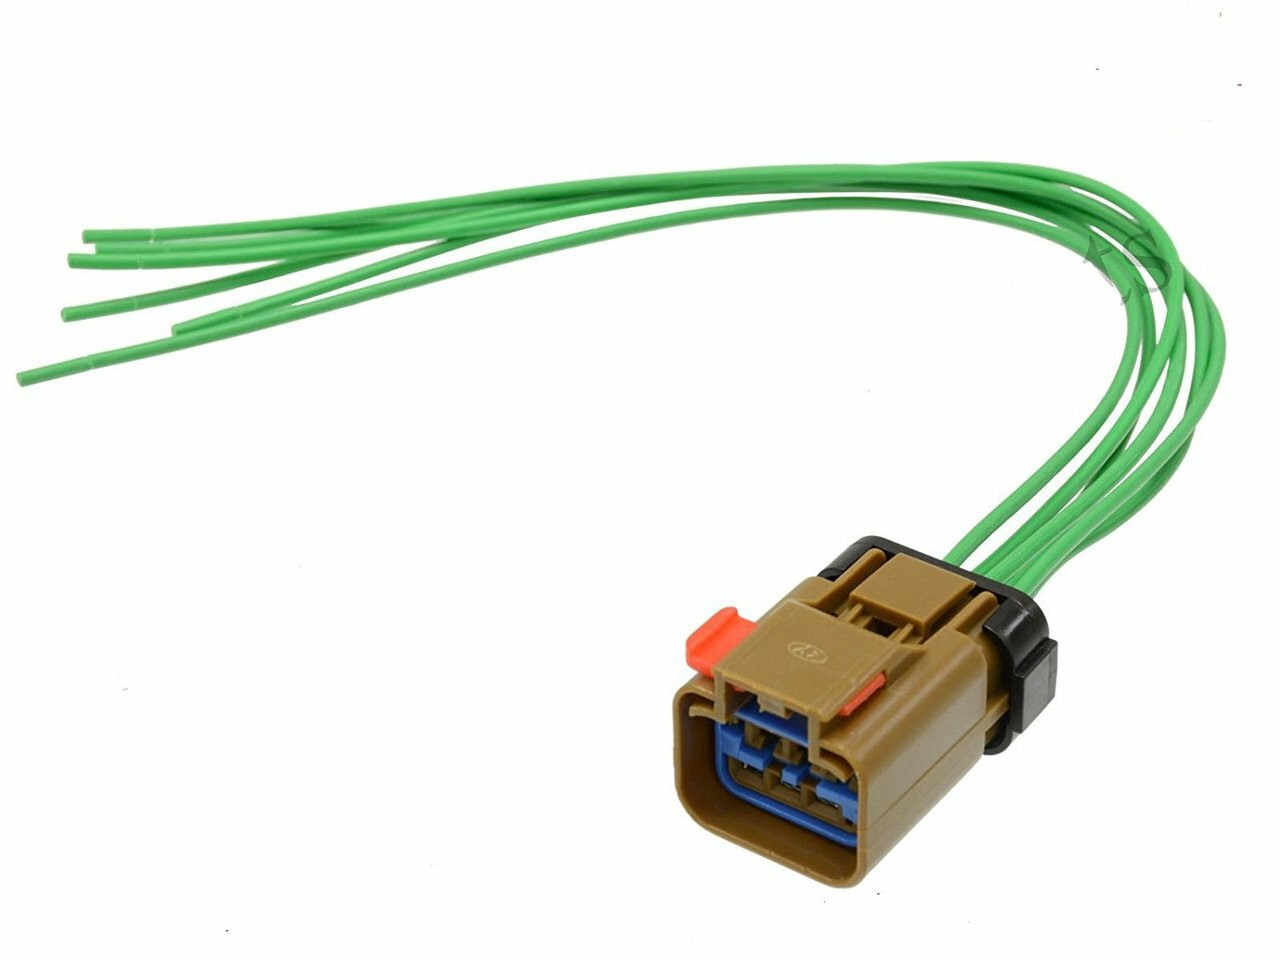 medium resolution of wiring harness pigtail connector kit repairs or replaces power chrysler wiring harness connectors jeep wiring connectors